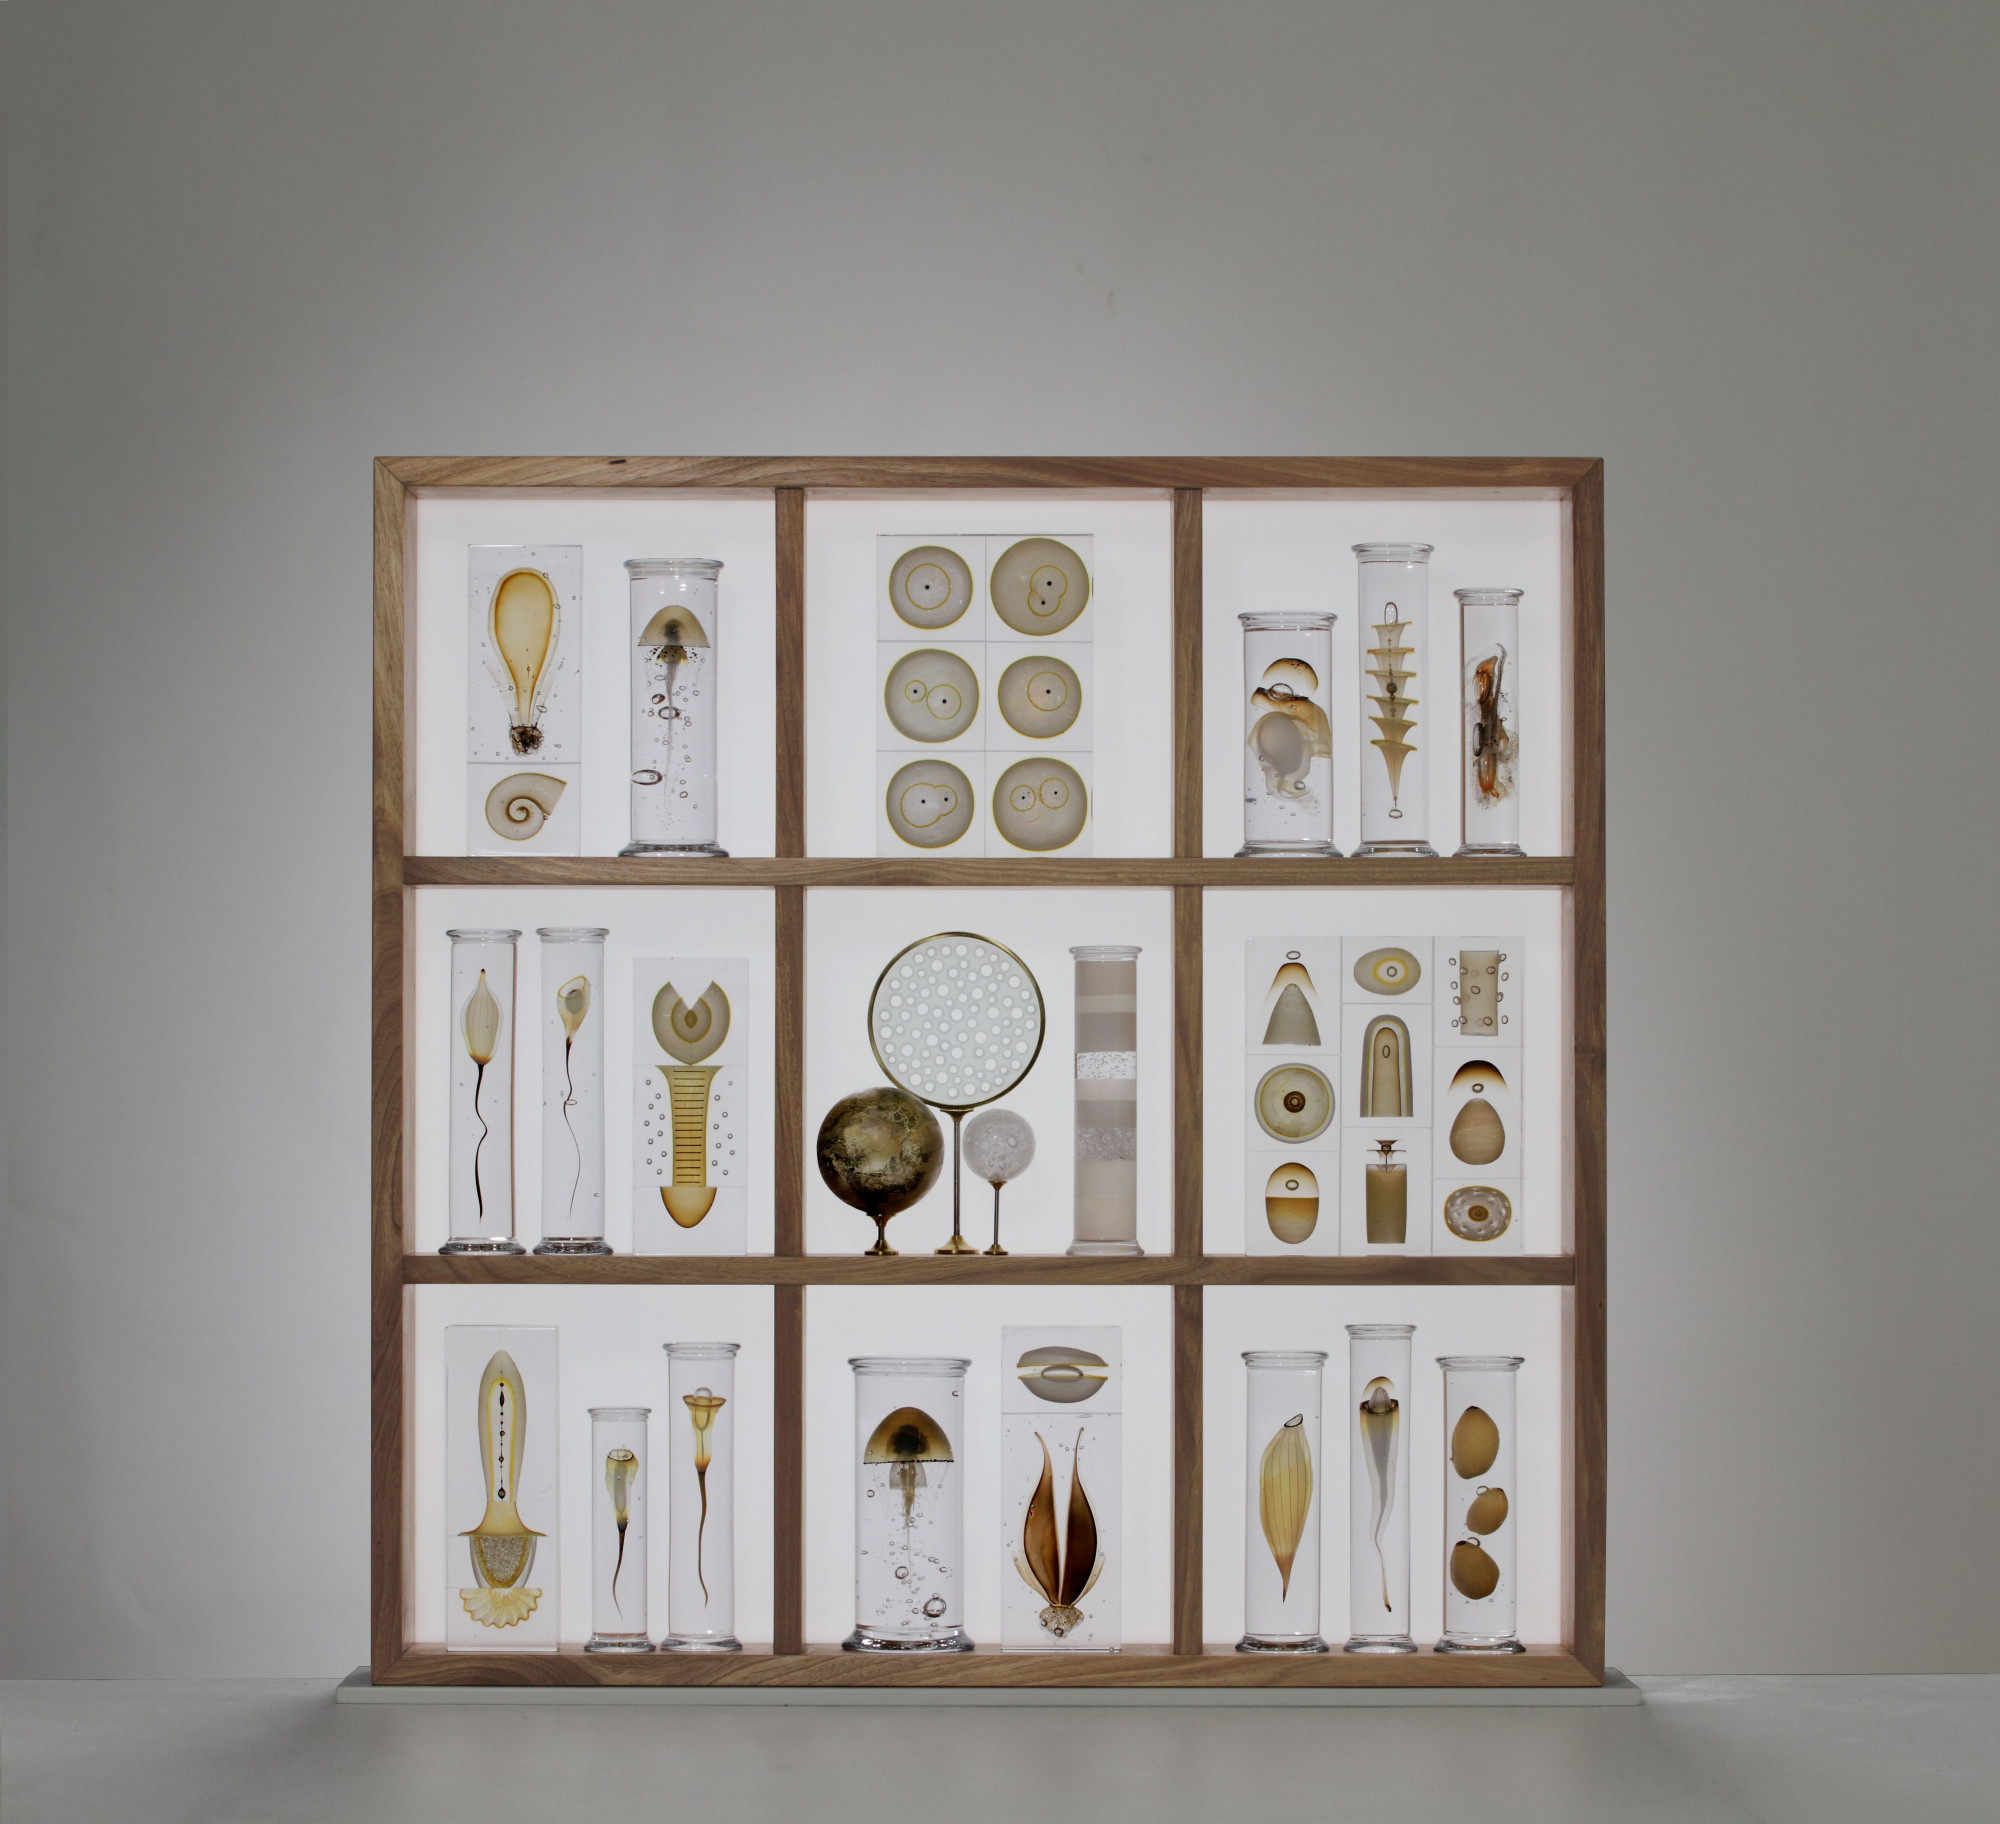 'Cabinet of curiosities' - Steffen Dam - Joanna Bird Gallery, London